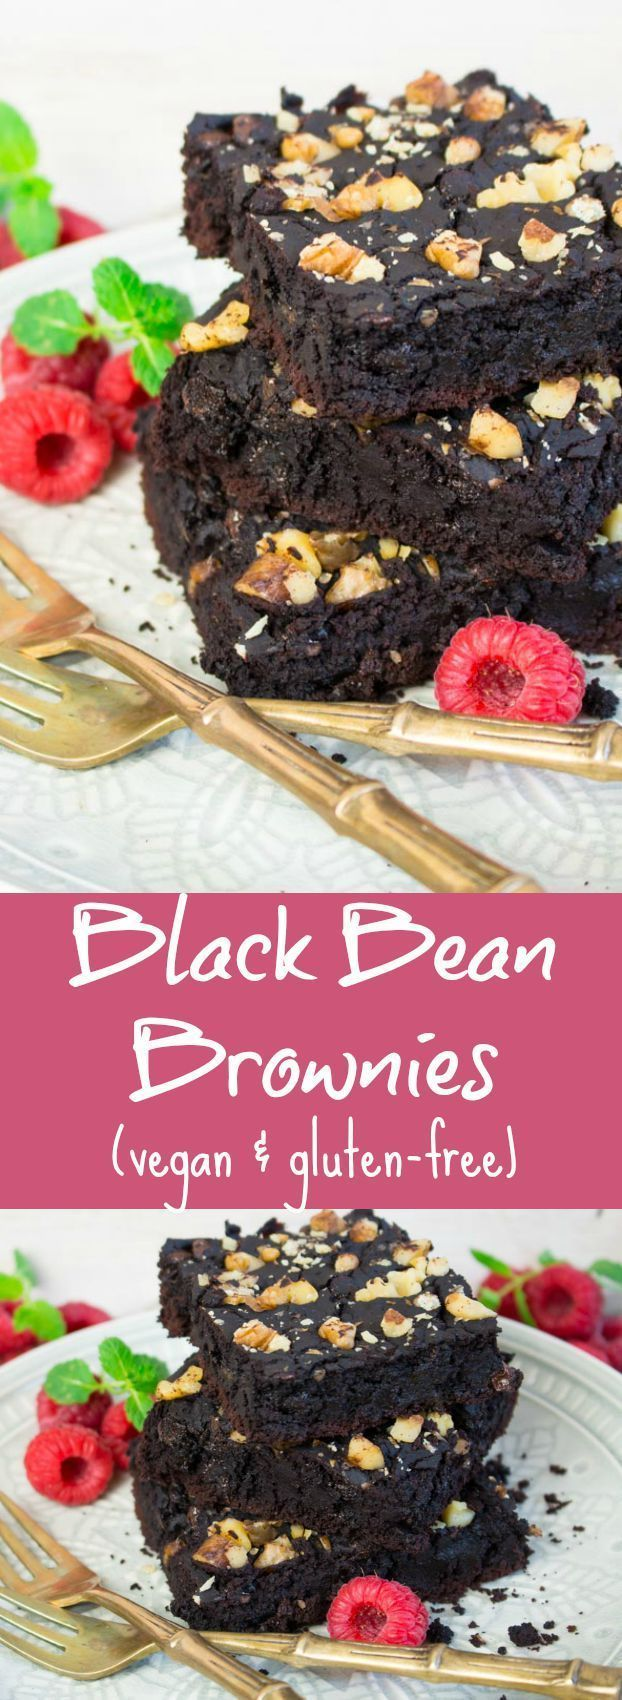 These vegan black bean brownies are not only super fudgy and chocolatey but also gluten-free and really easy to make!